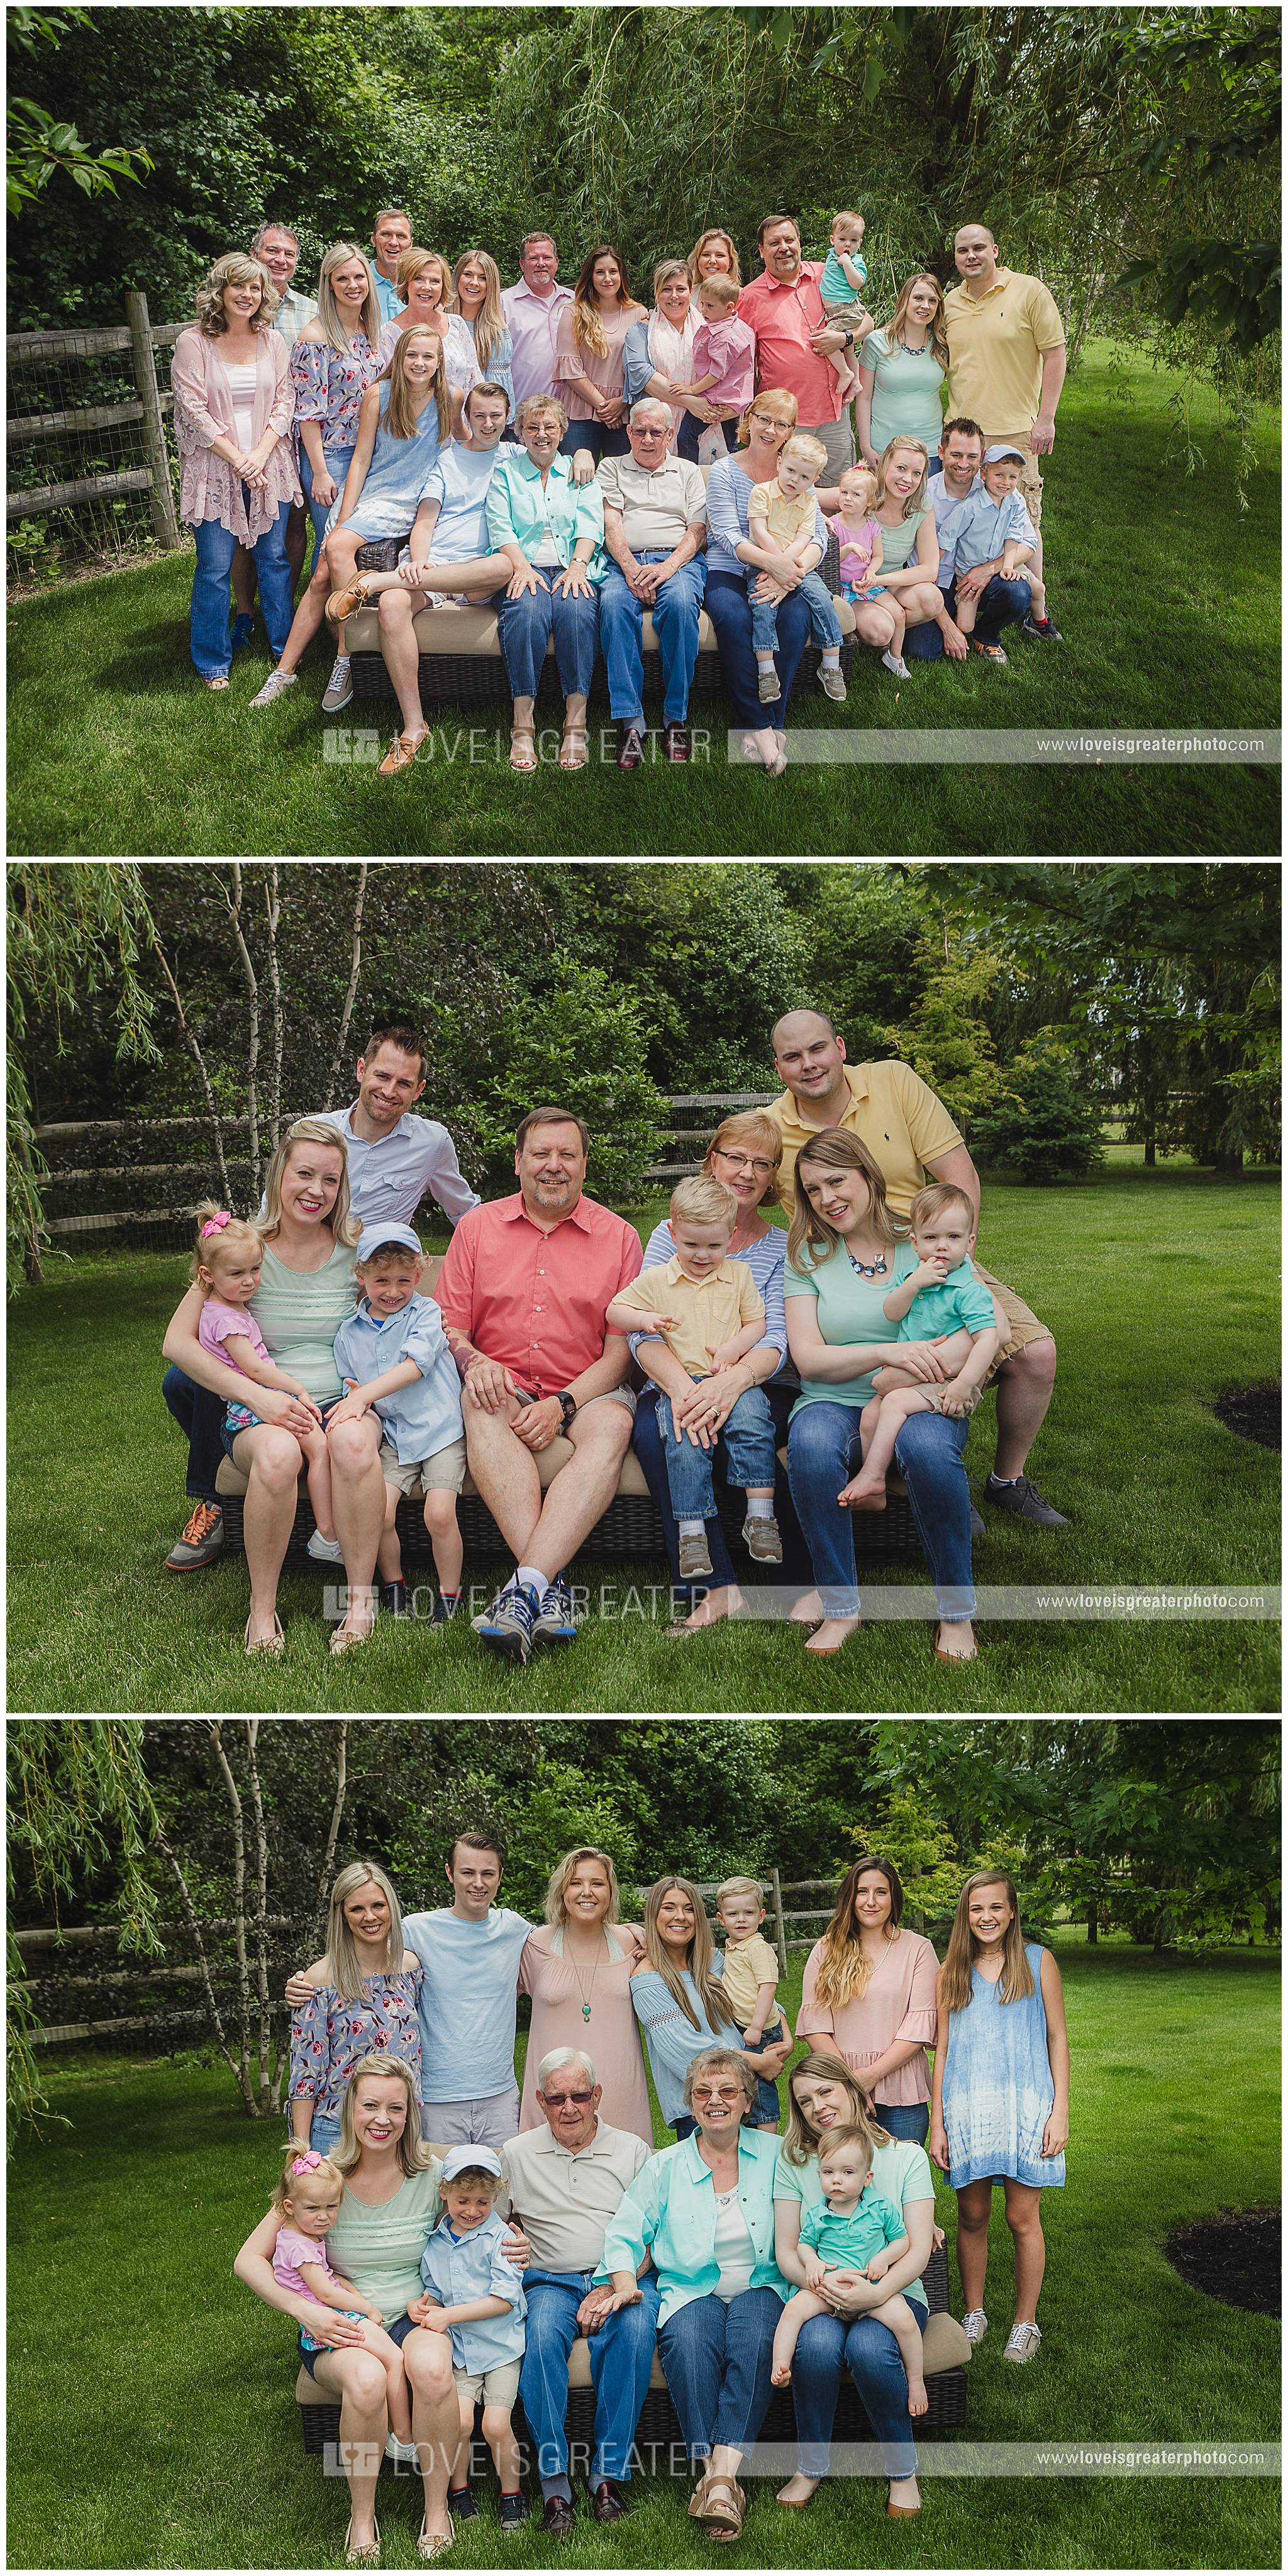 extended family photography, extended family photo shoot, large family photo shoot, family photography, ohio family photographer, toledo family photographer, toledo ohio family photgrapher